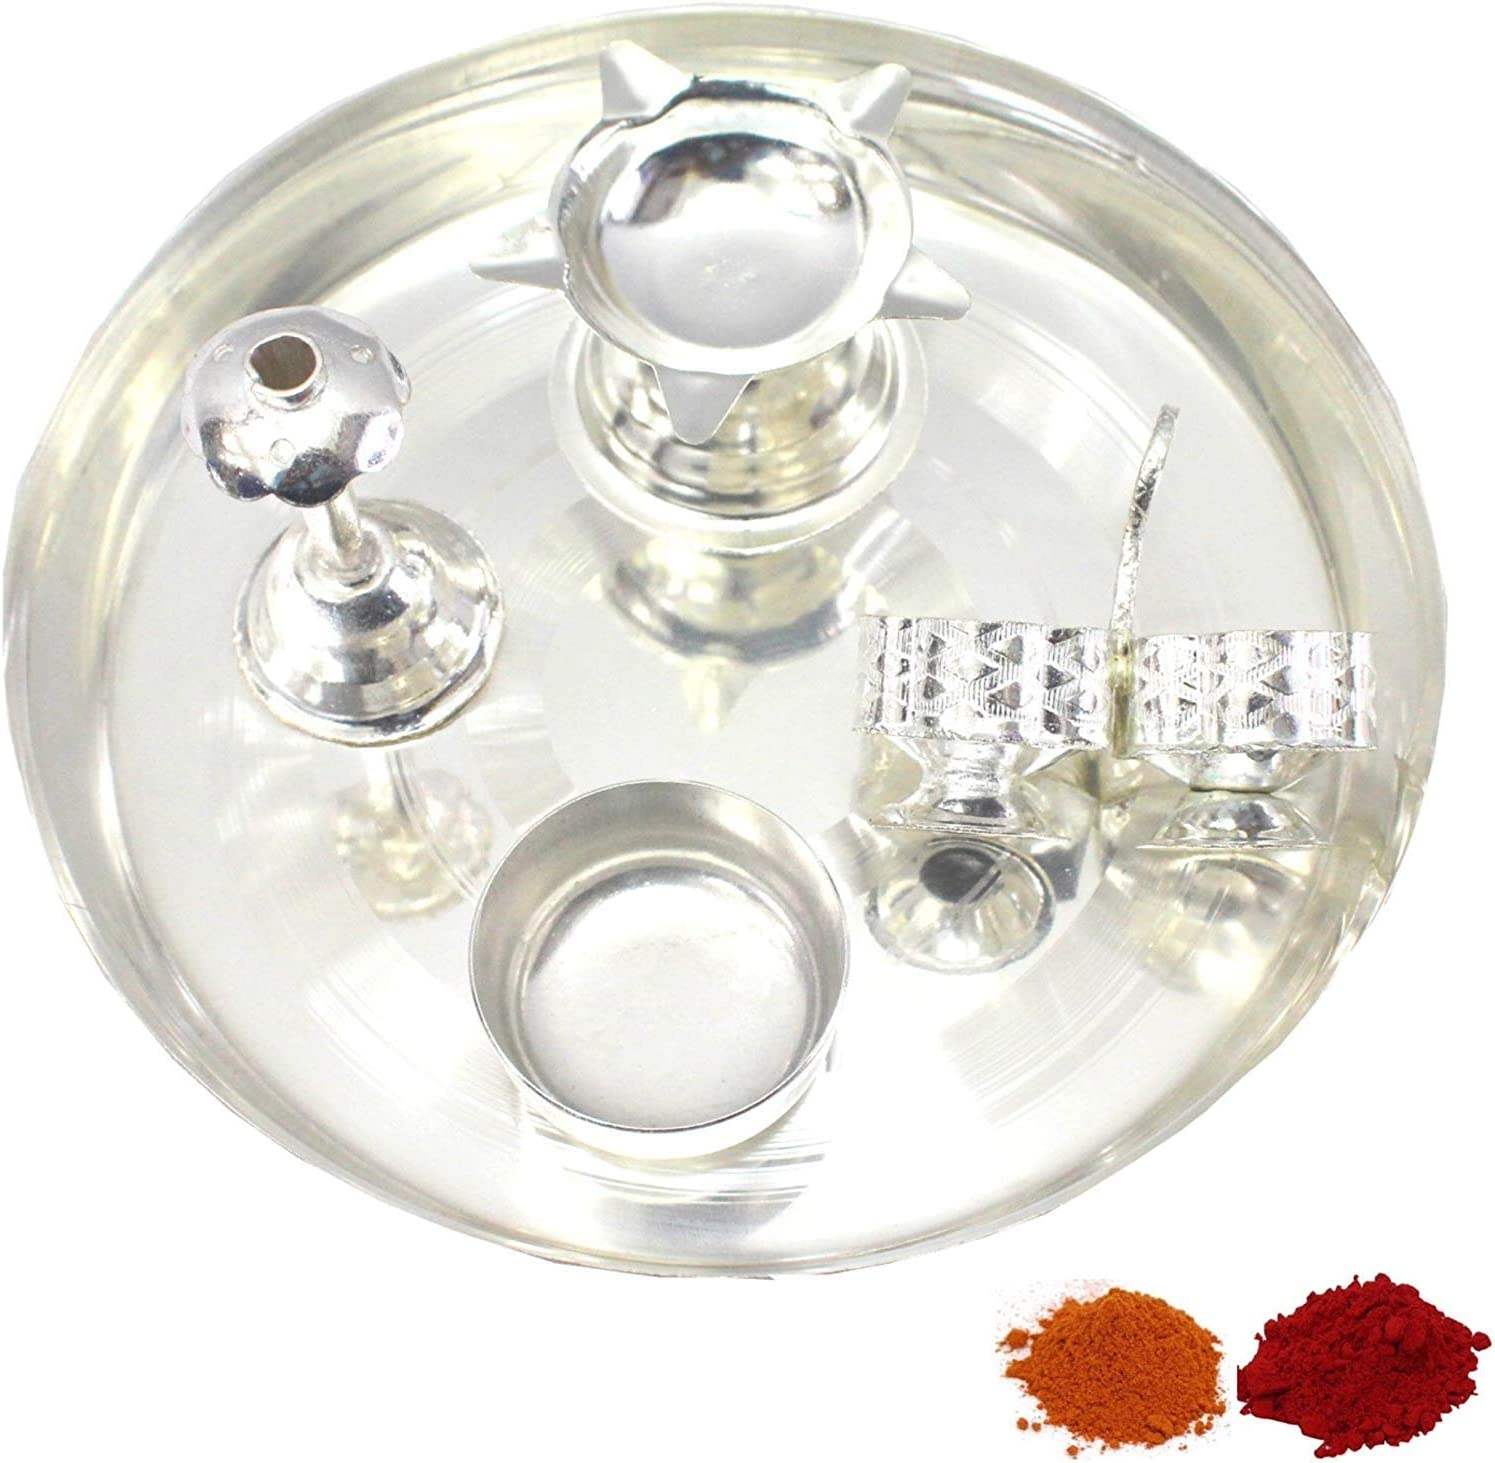 NOBILITY Silver Plated Pooja Thali Classic Occasional Set Inch 6 Free Washington Mall shipping